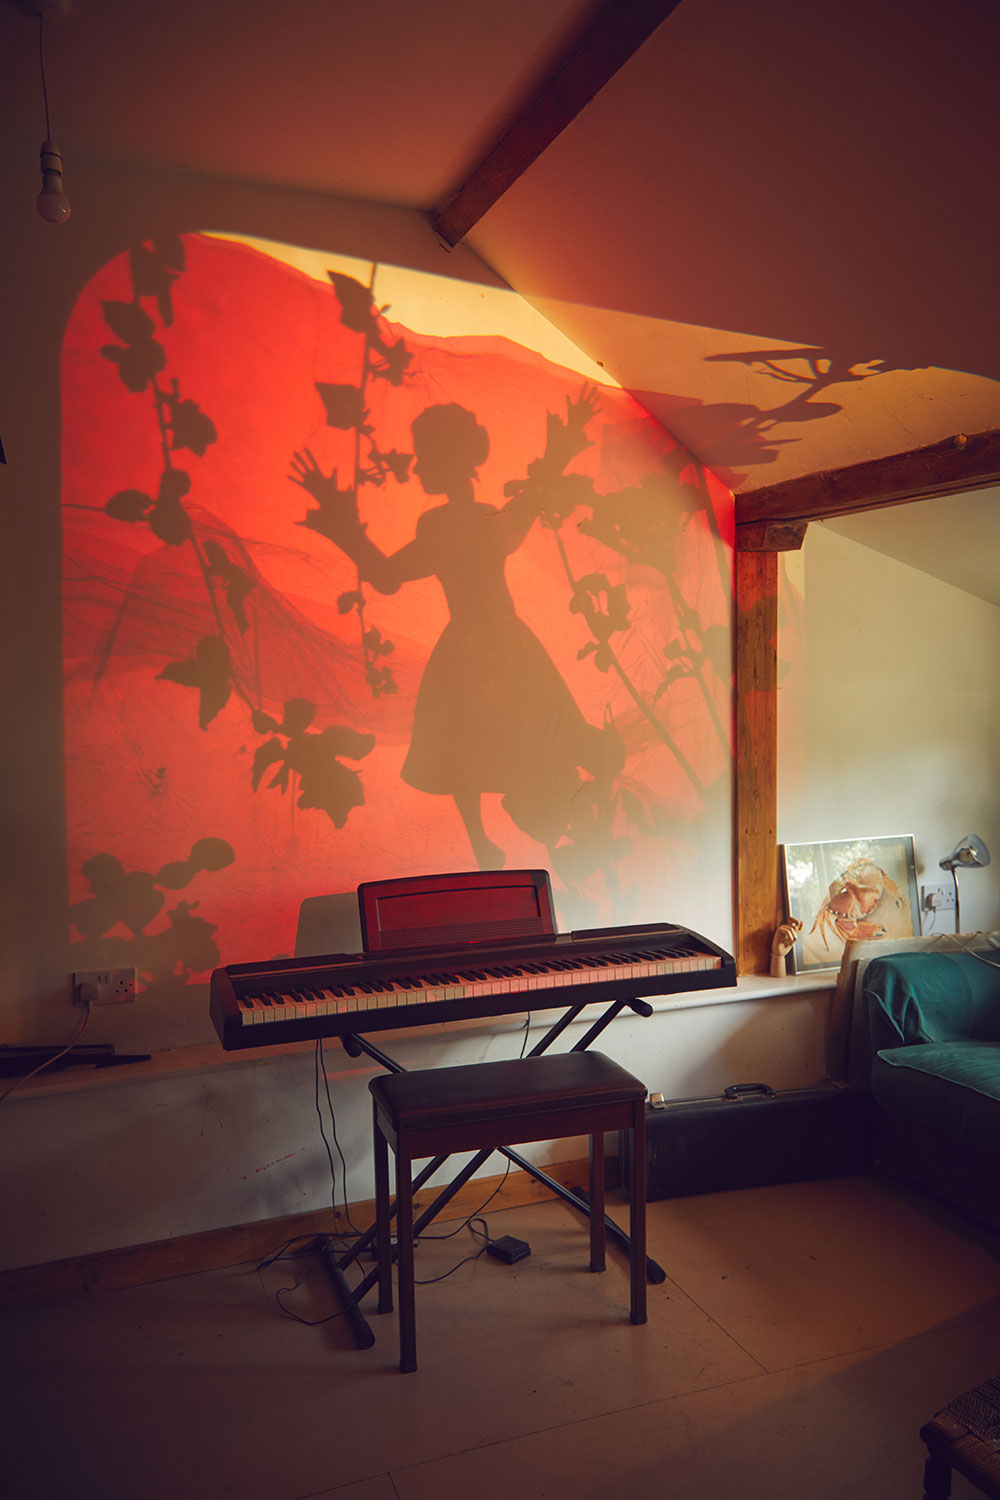 Professor Suzie Hanna's studio showing an animation of a girl with trees on a wall by a piano and stool